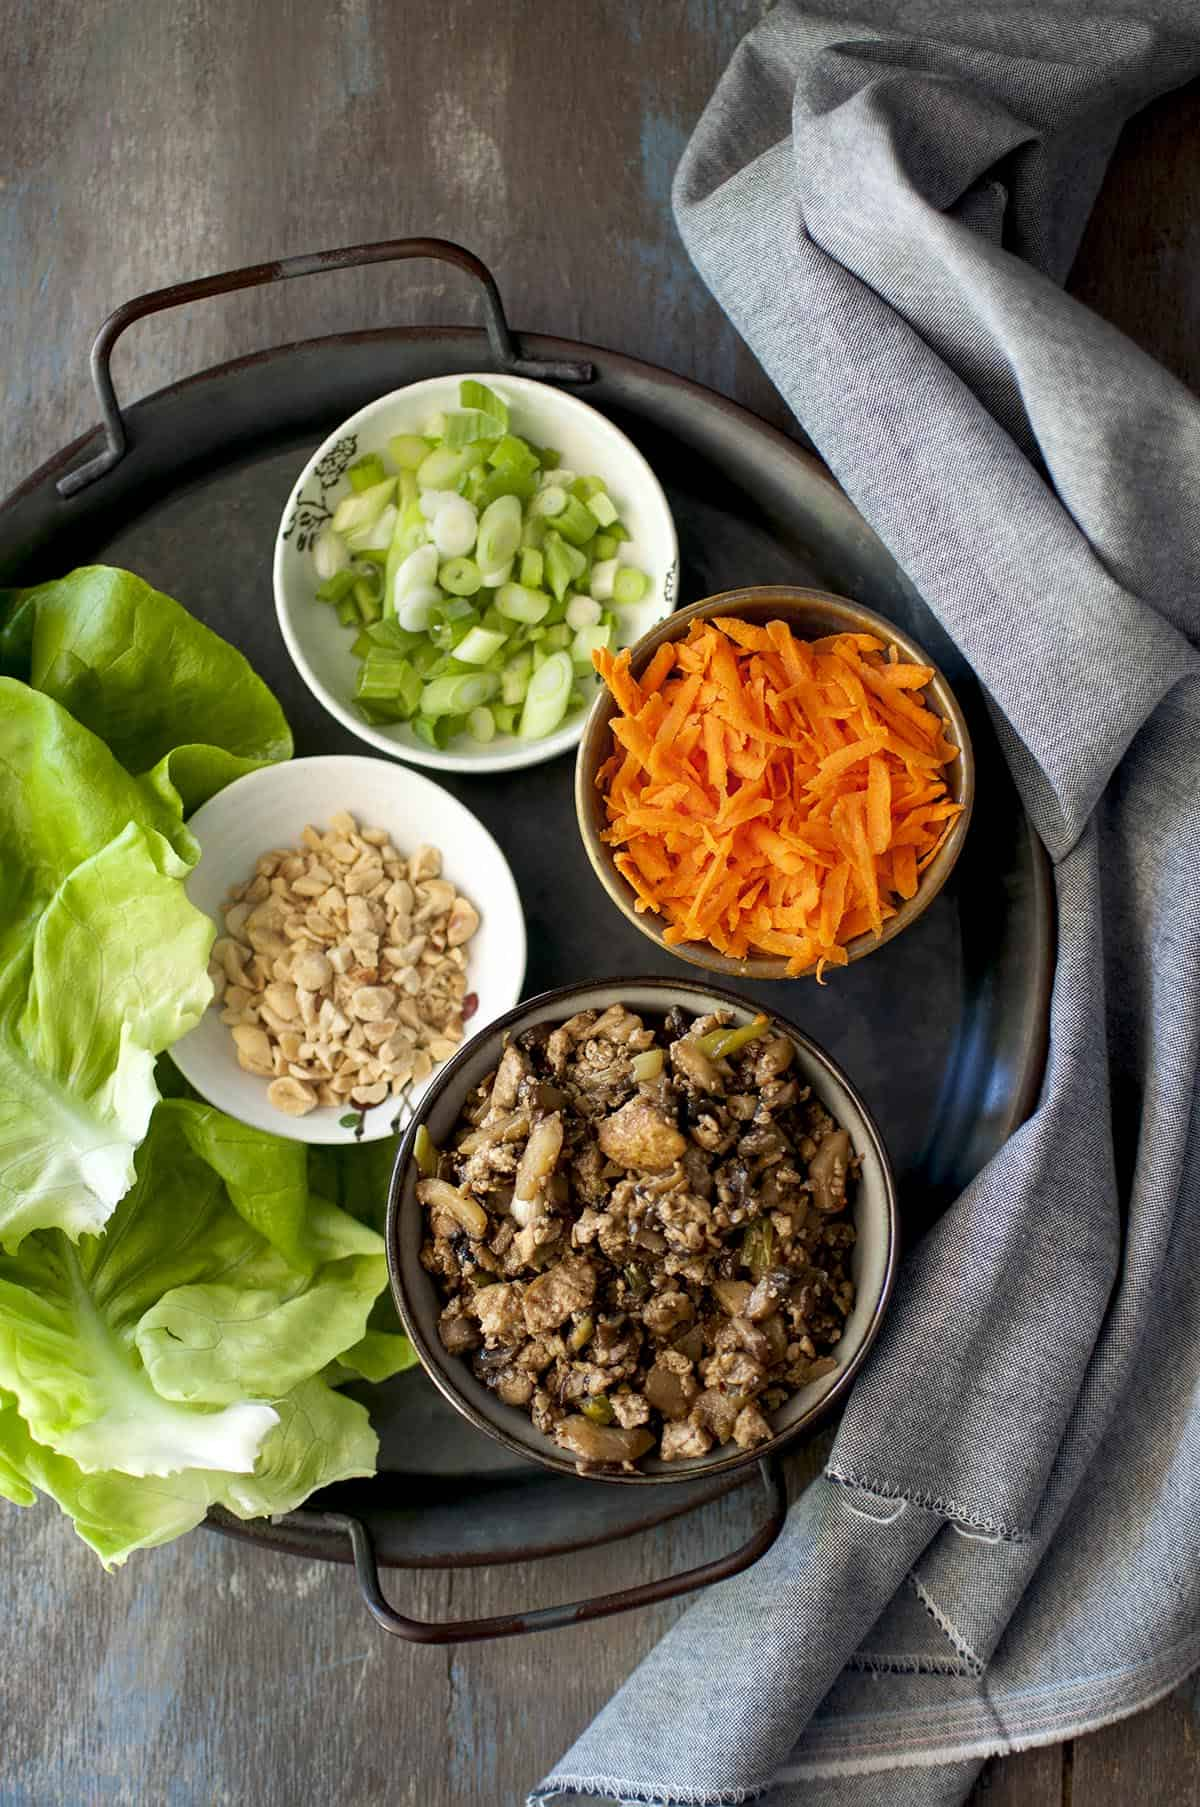 Vegan Lettuce Wraps with Tofu filling